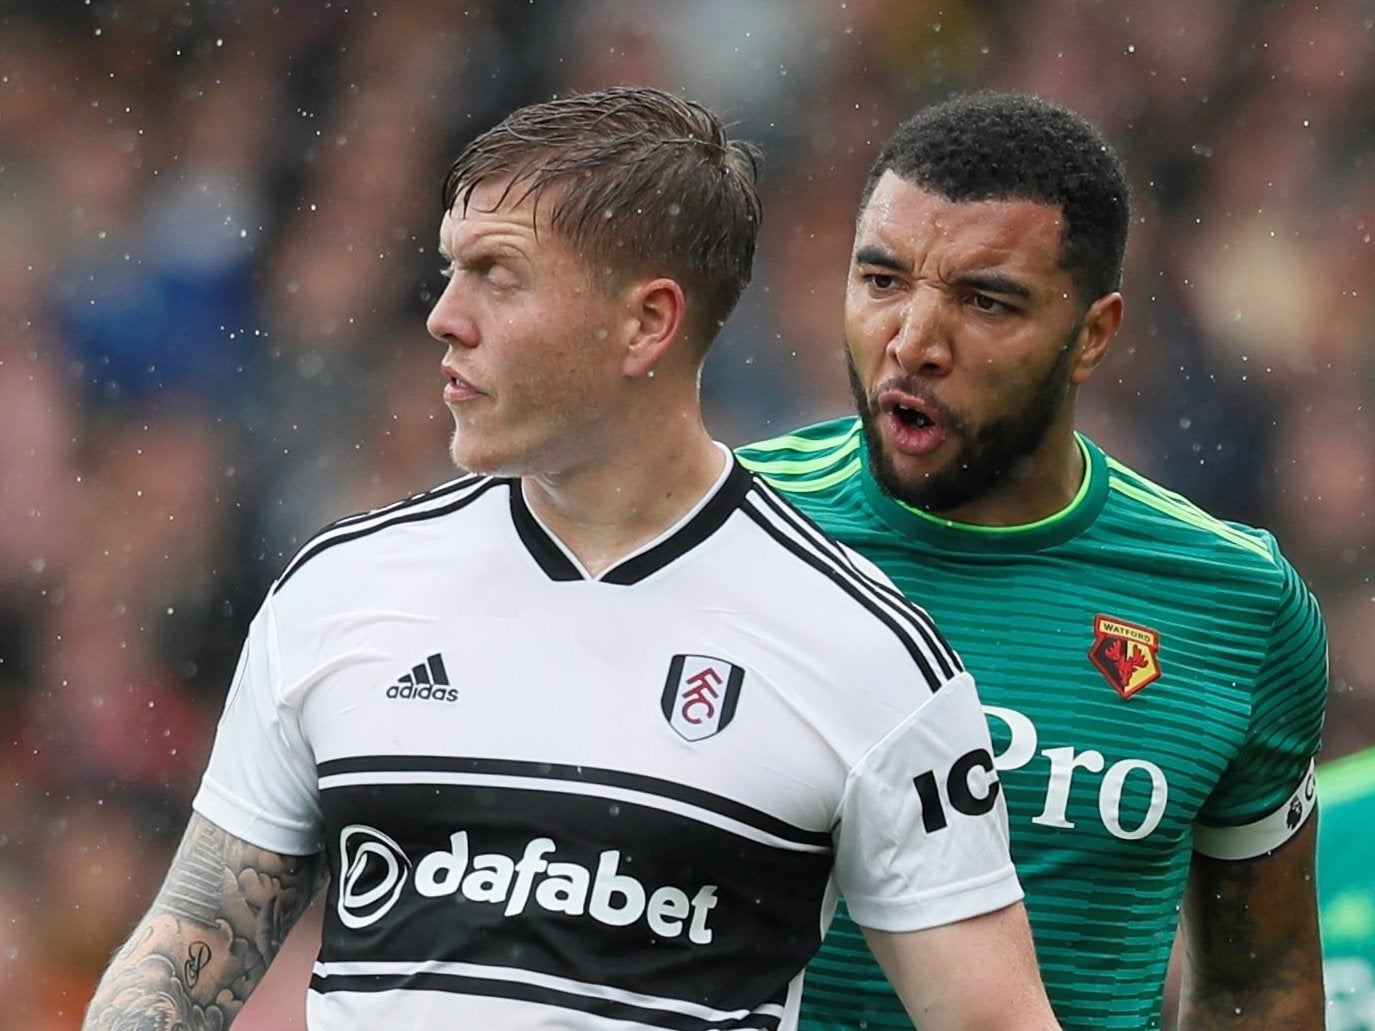 Fulham manager Claudio Ranieri reveals defender Alfie Mawson injured himself while putting on his boots